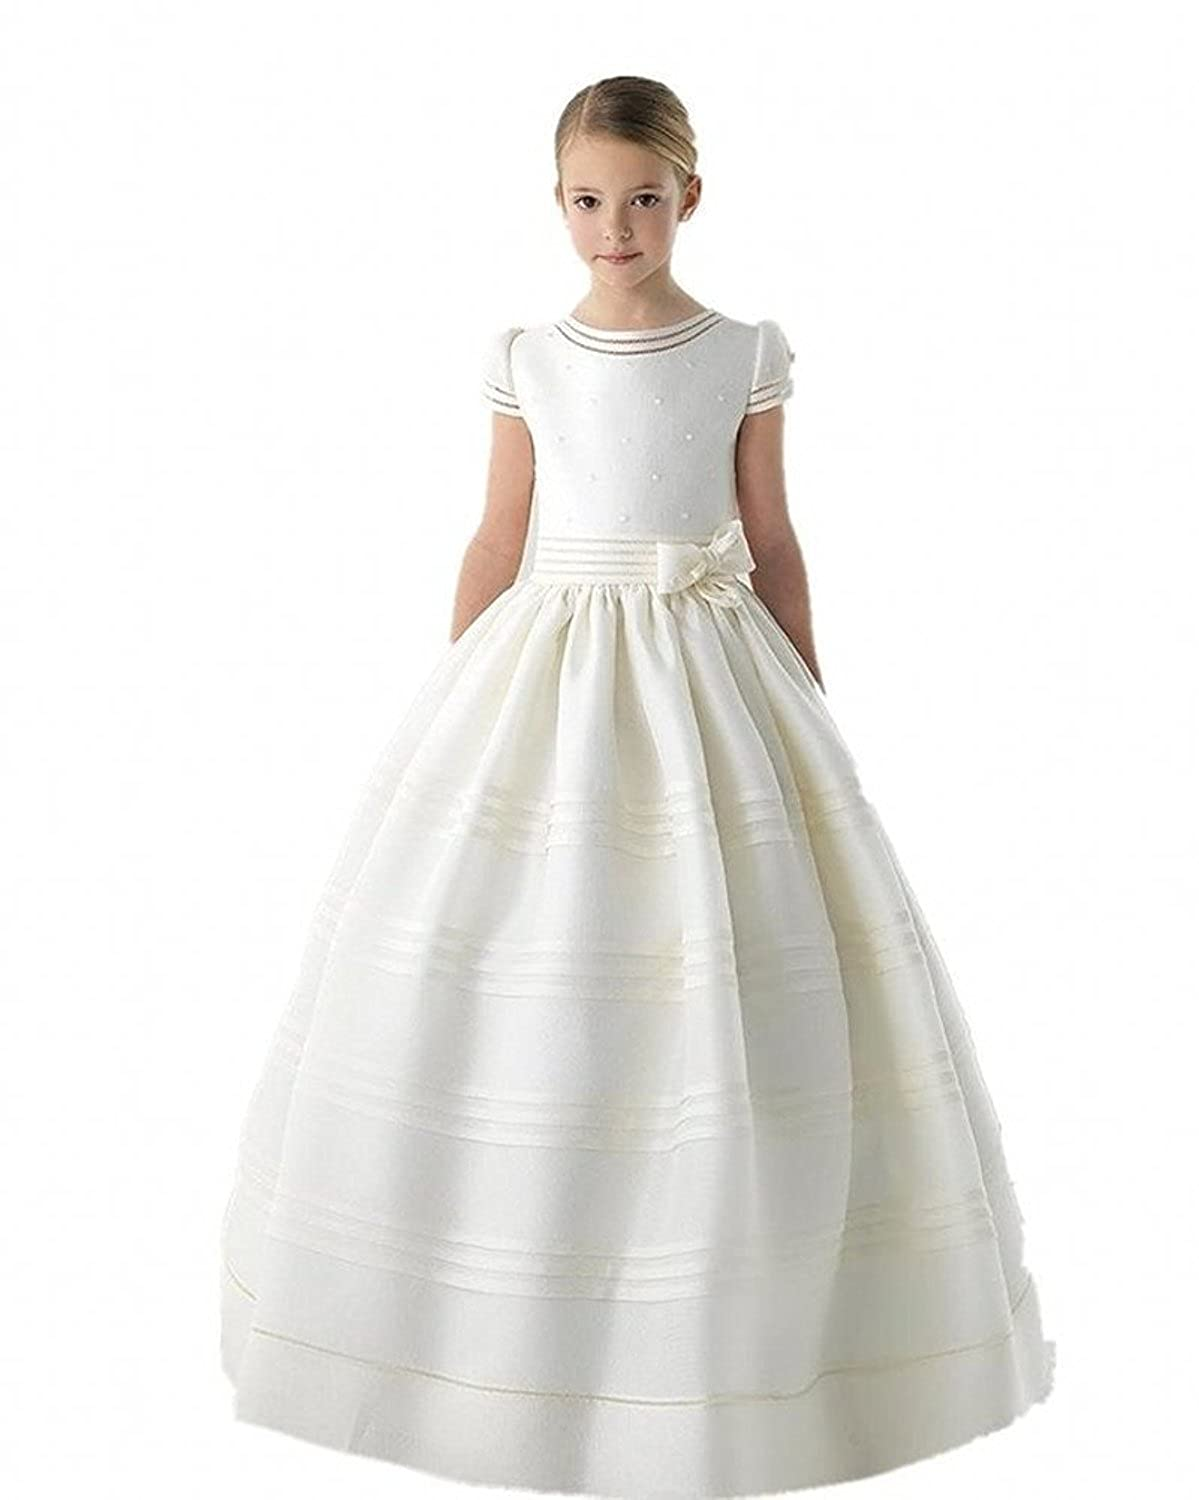 Amazon.com: Graceprom Girls Scoop Short Sleeves First Communion Dresses with Bow Flower Girl Dress: Clothing